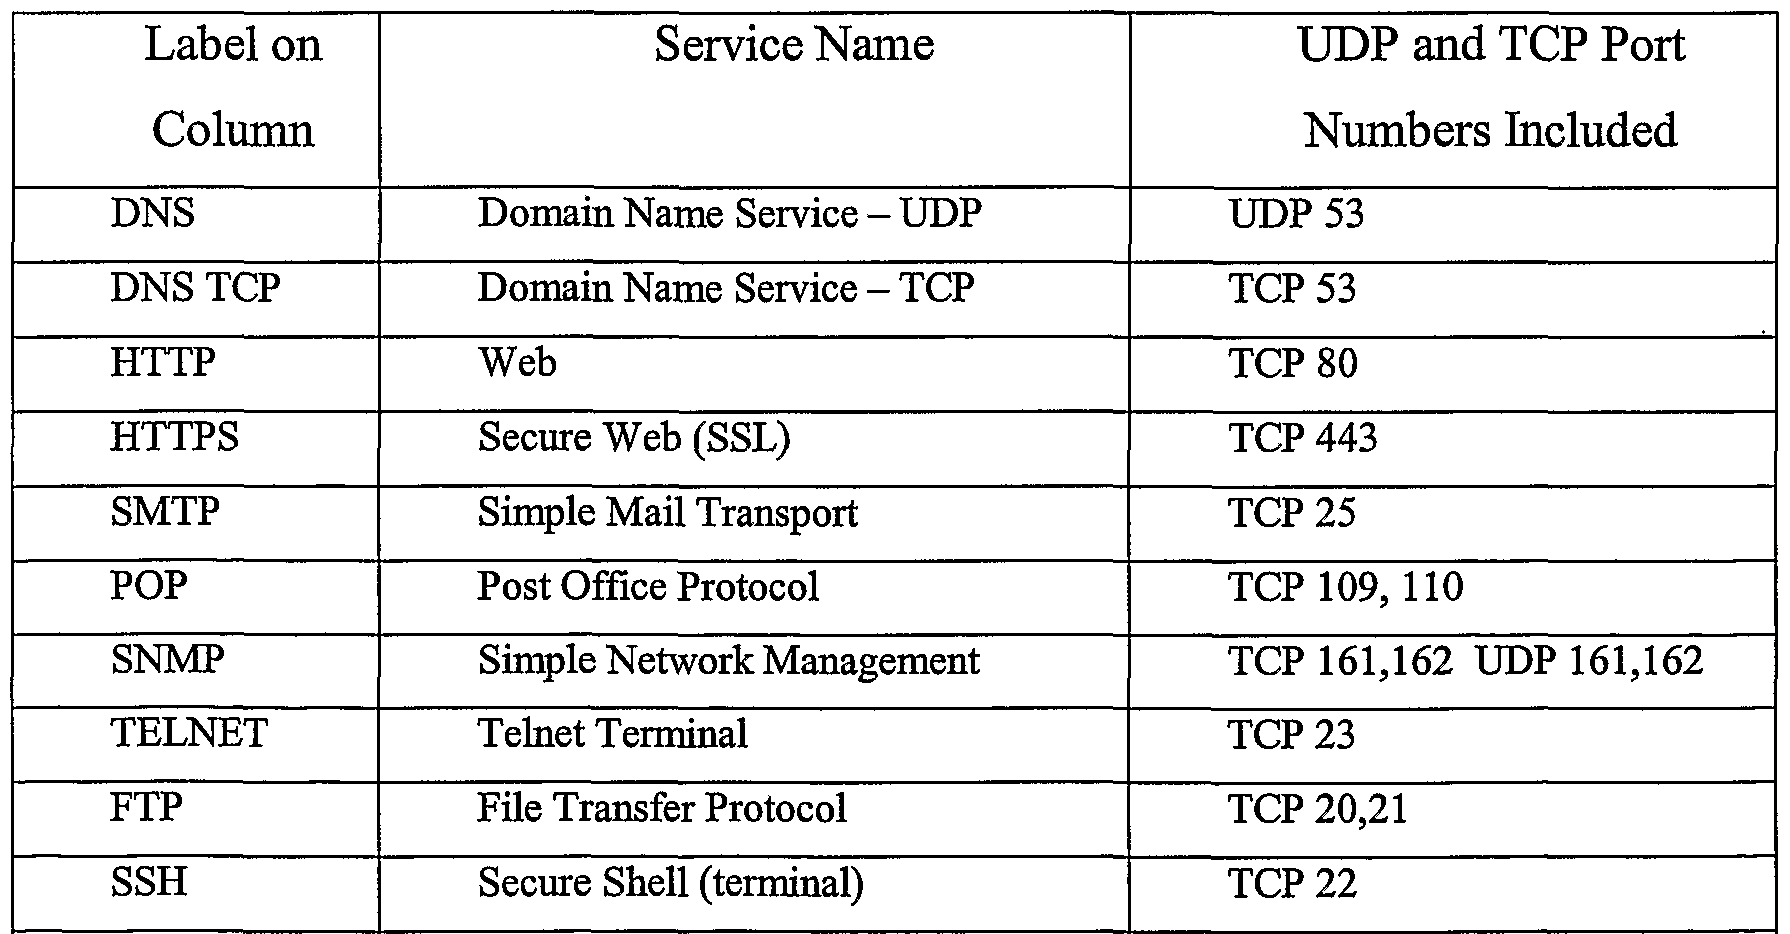 2.0 4 Explain common TCP and UDP ports, protocols, and their purpose